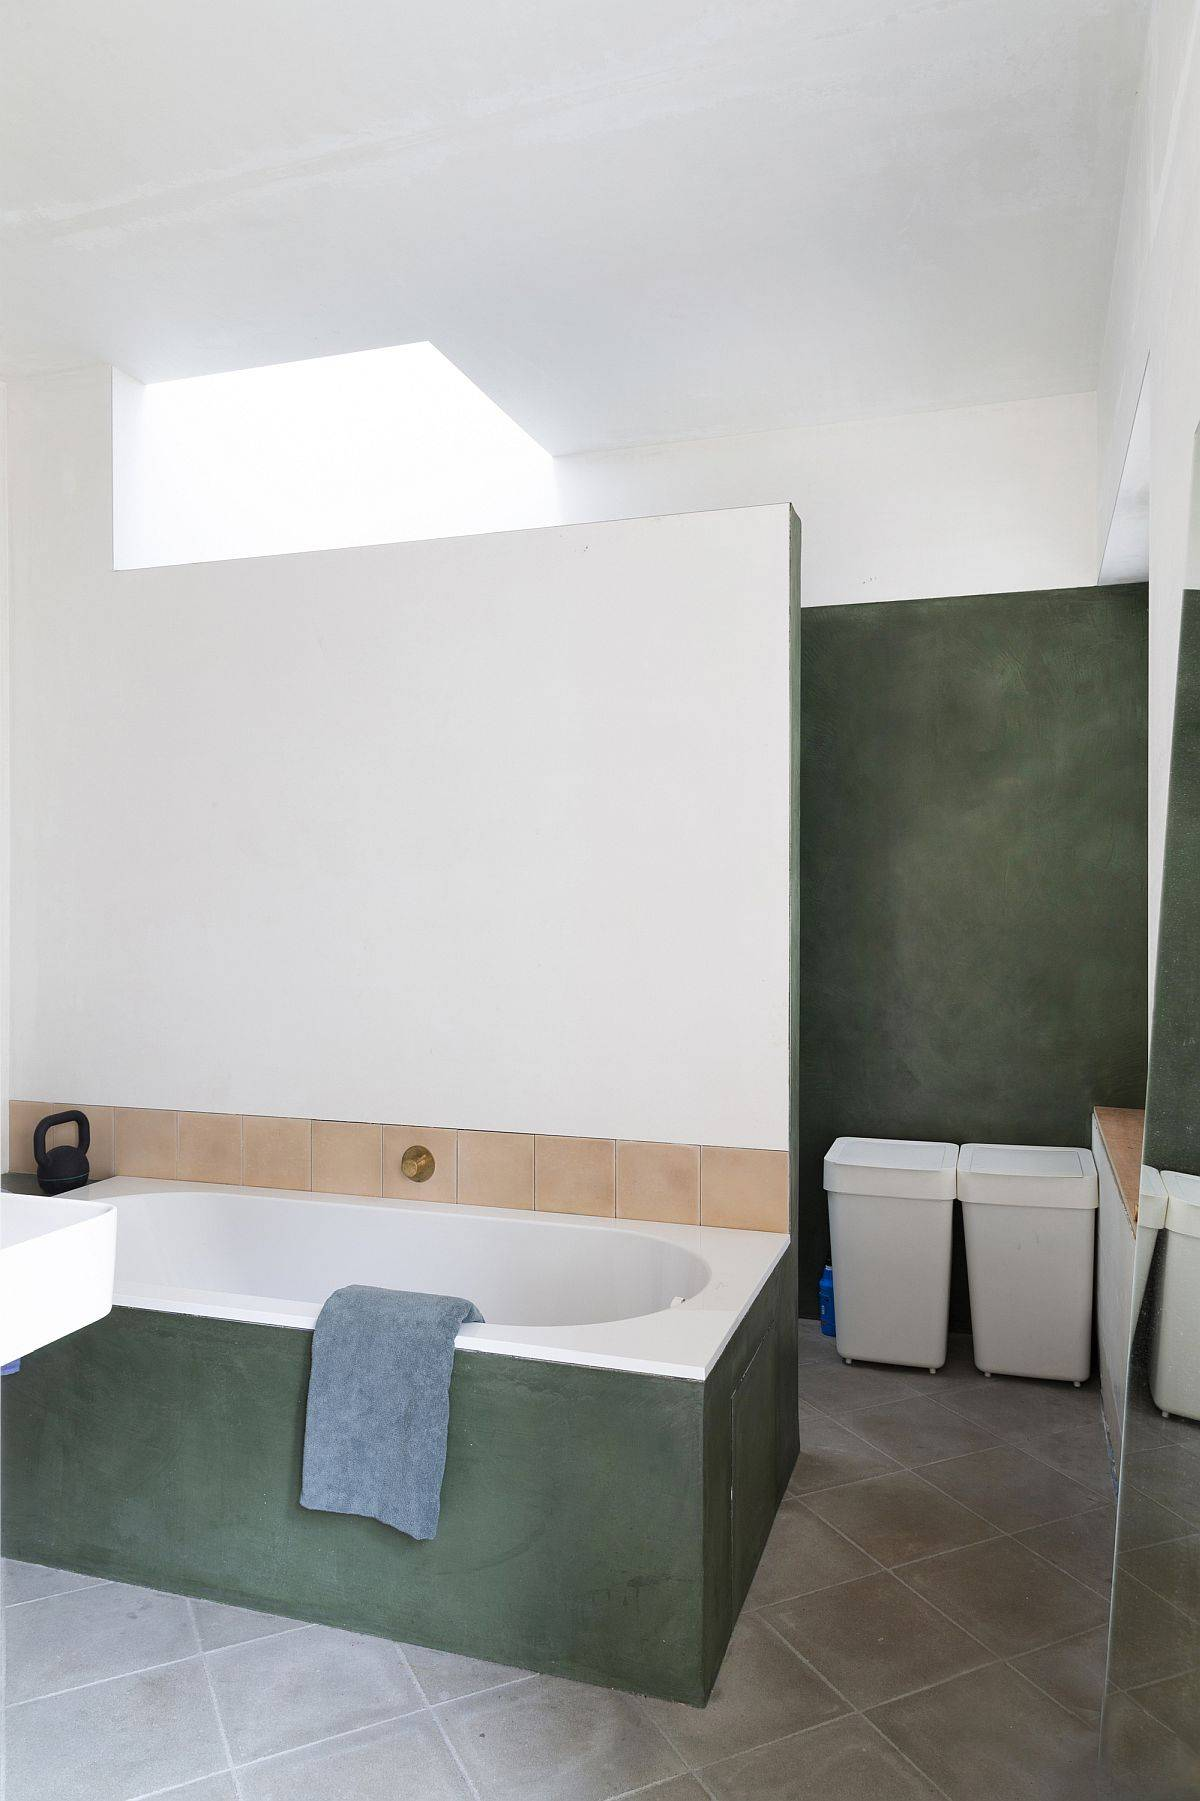 Contemporary-bathroom-in-neutral-hues-with-skylight-and-dark-green-accents-33868